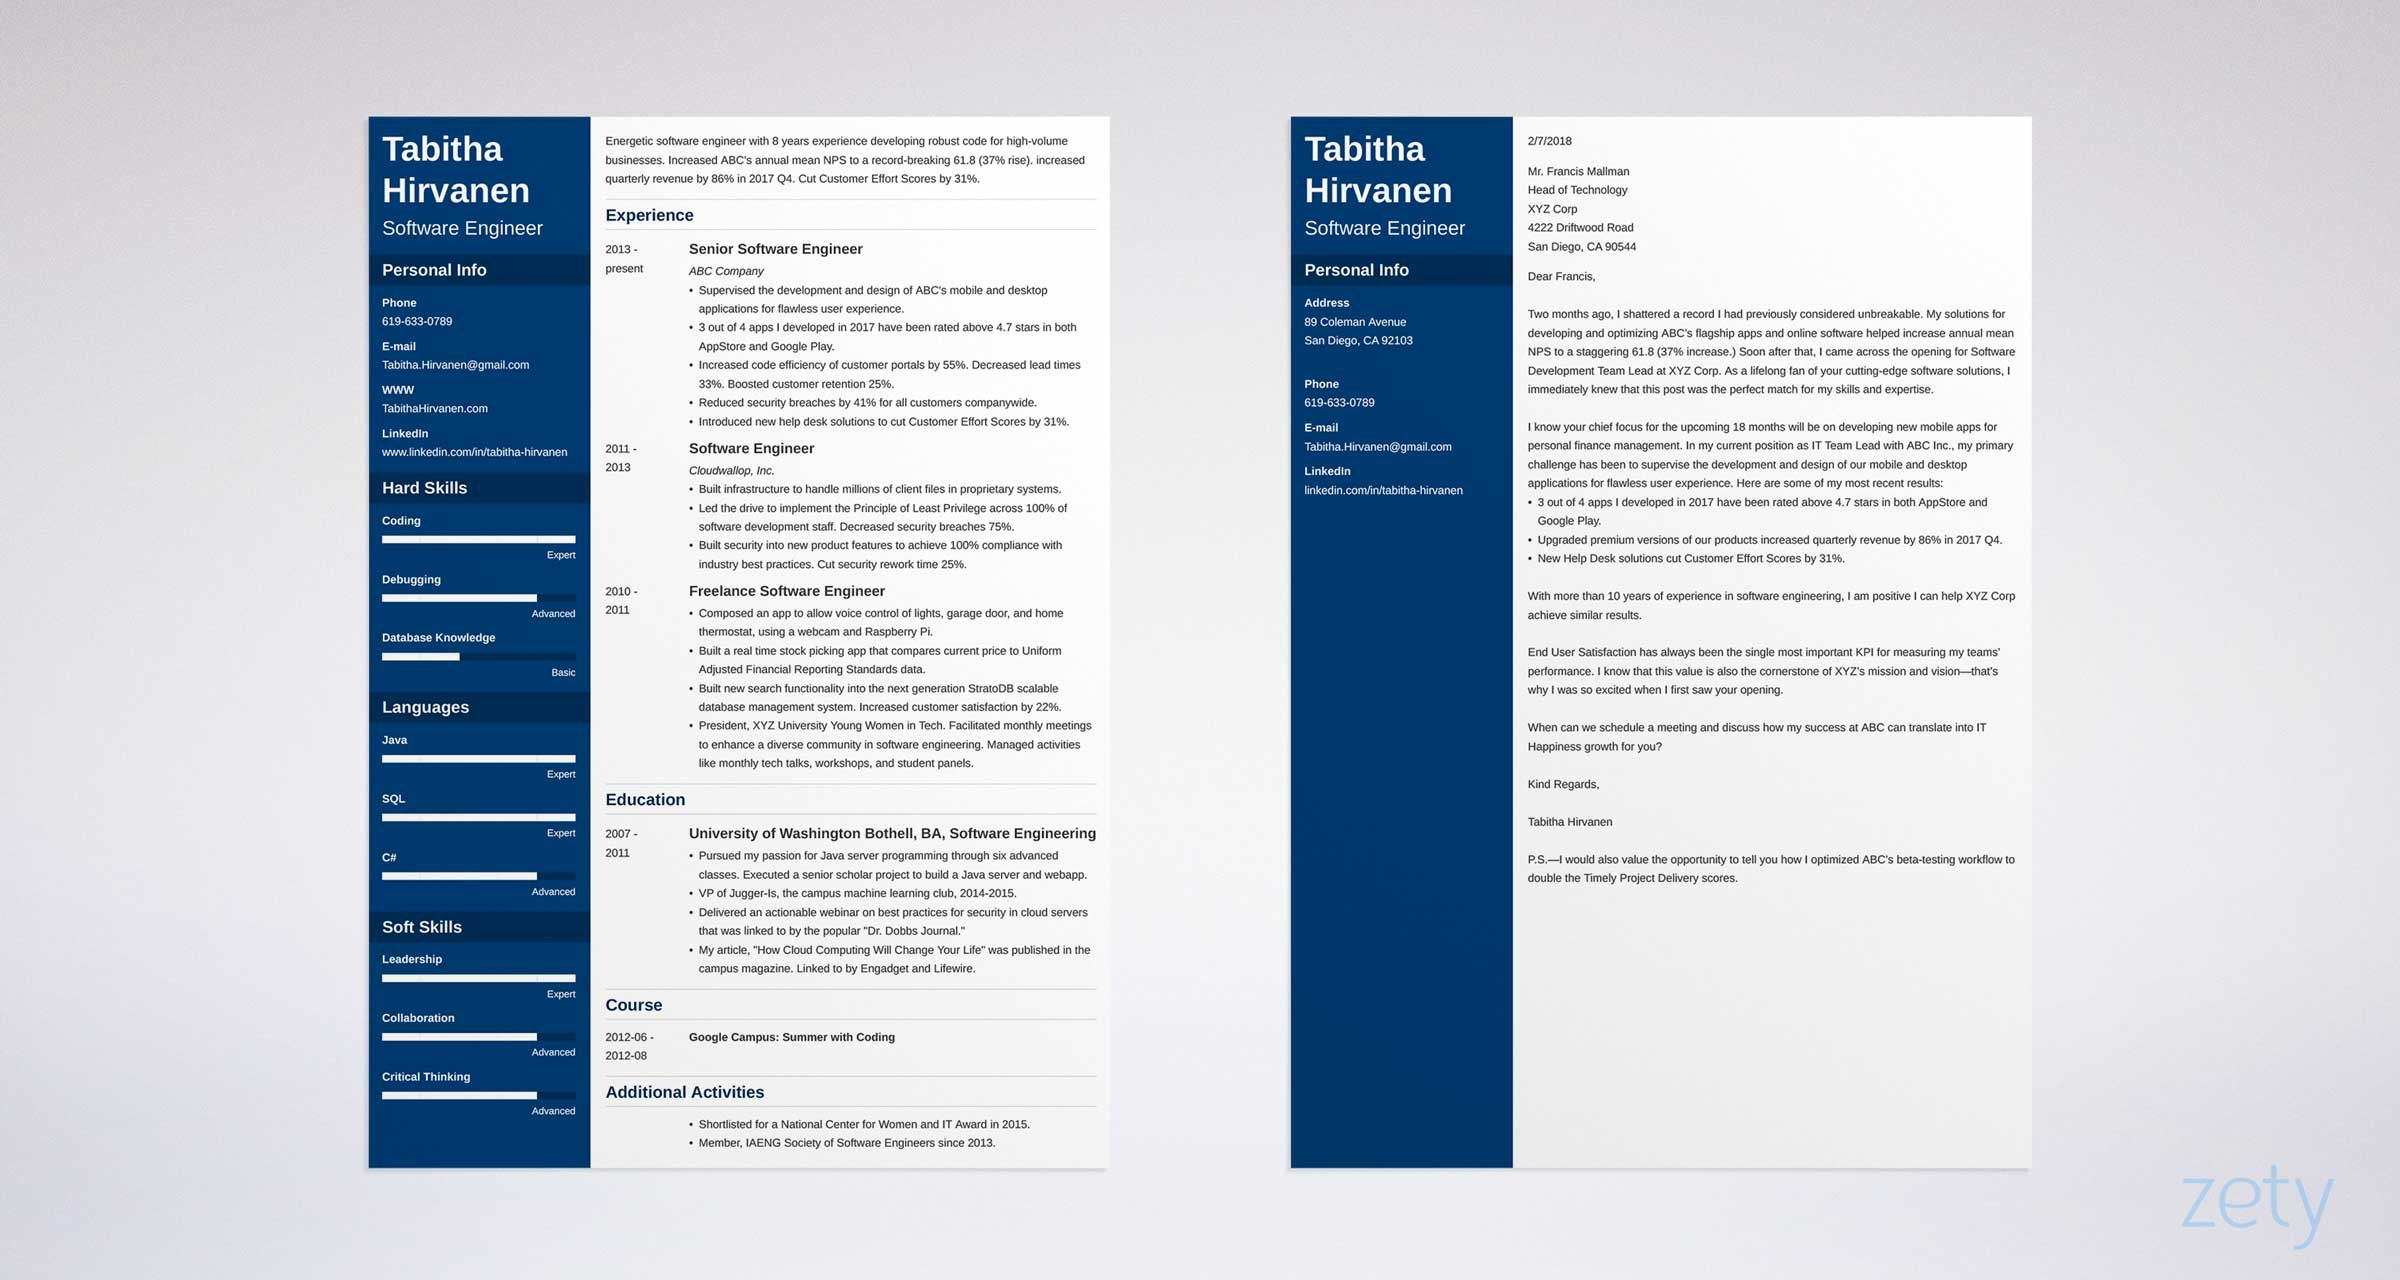 Software Engineer Cover Letter: Sample, Writing Guide & 15+ Examples